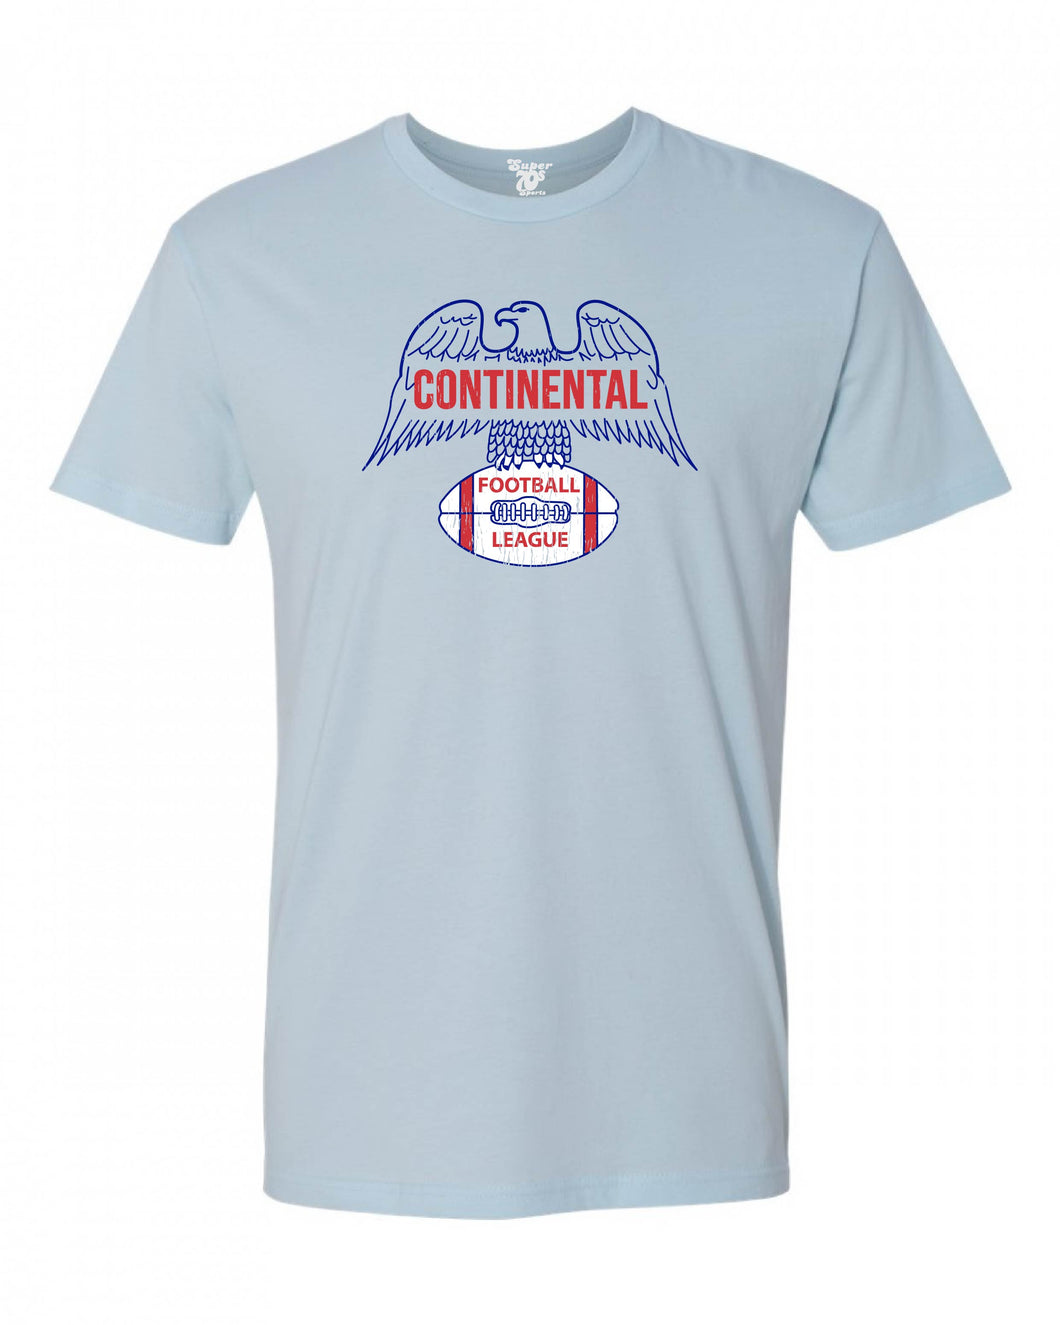 Continental Football League Tee